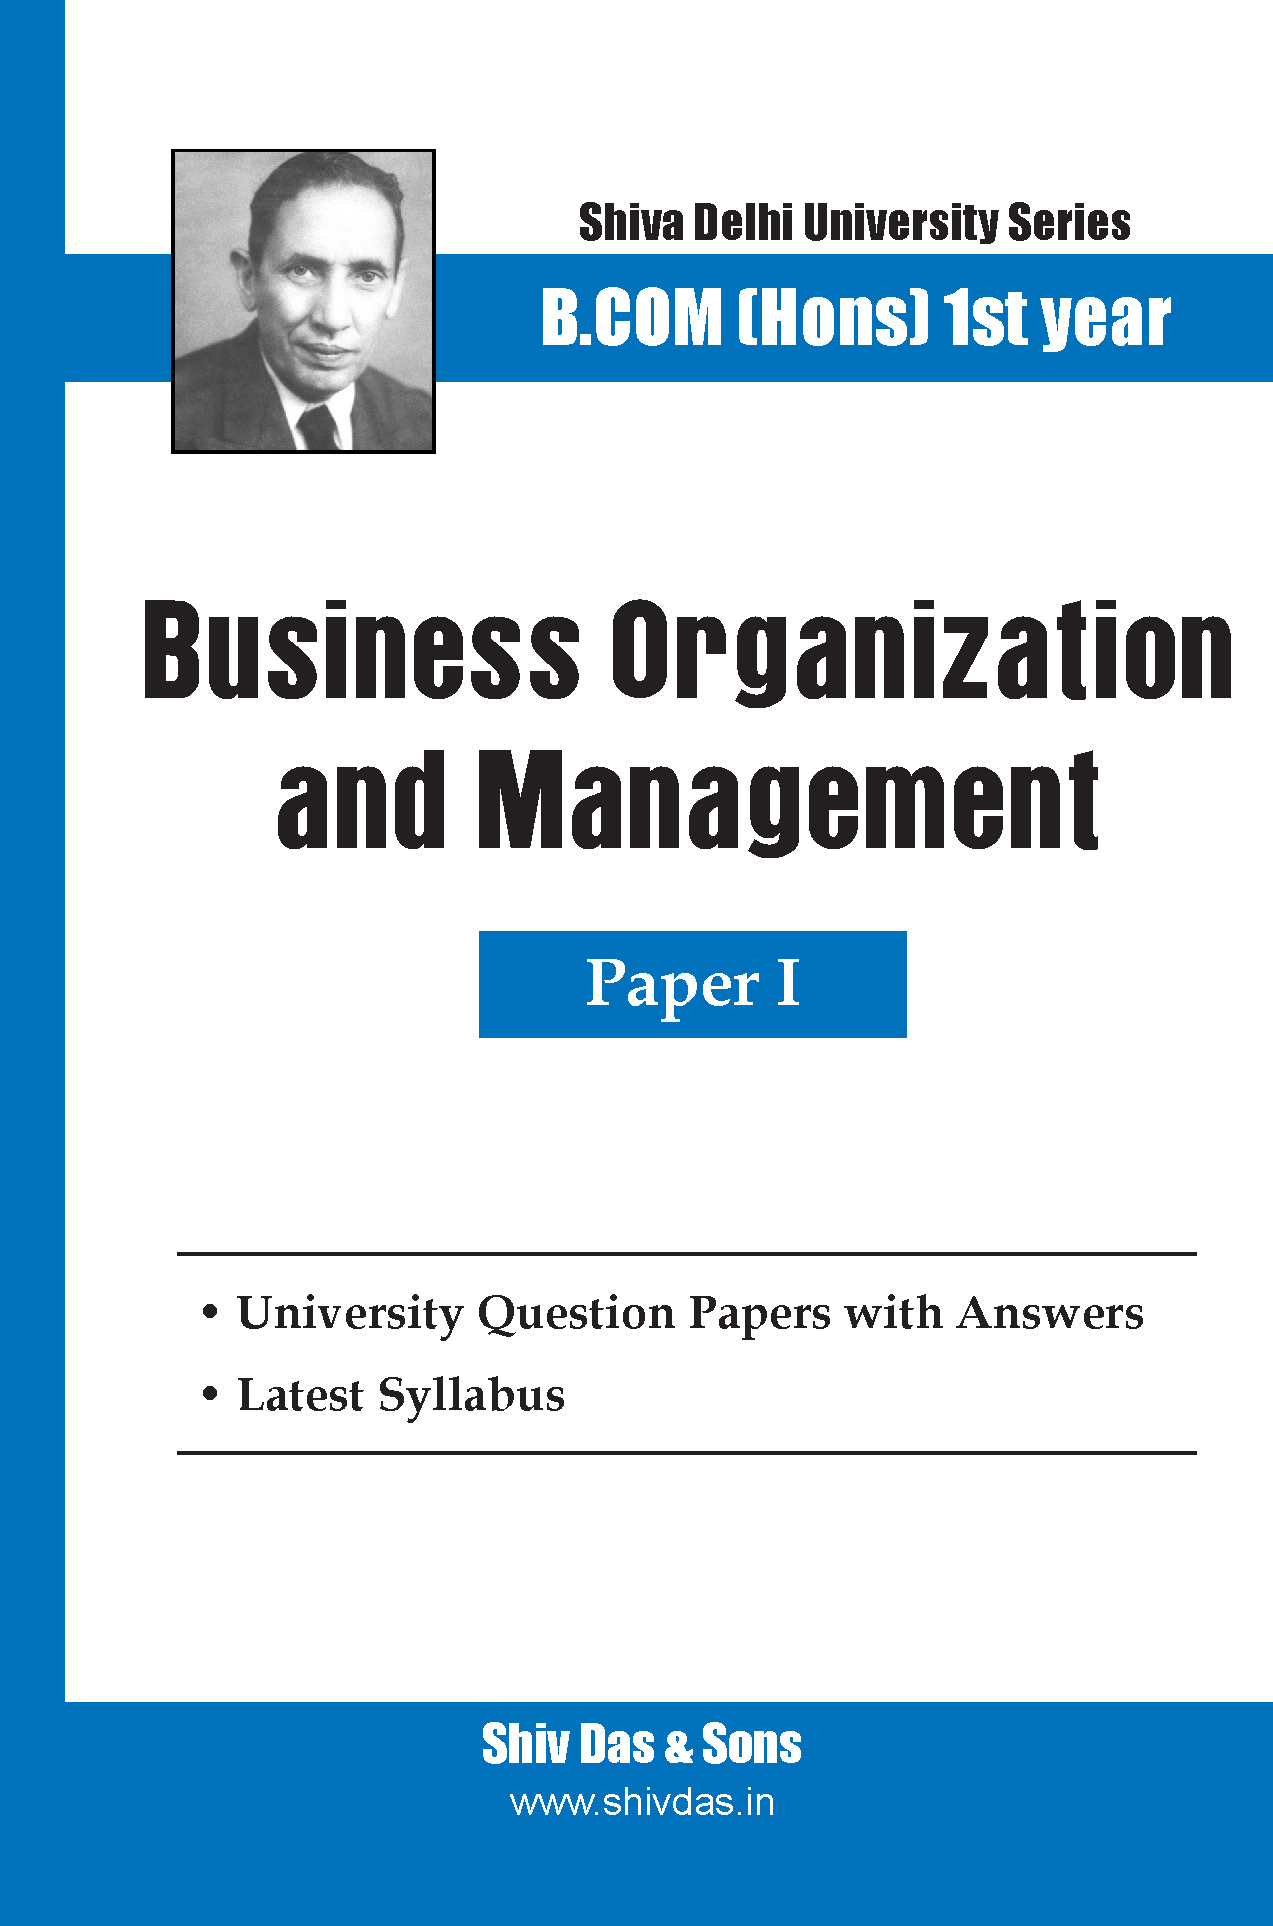 Business Organization and Management B.Com Hons 1st Year-SOL/External